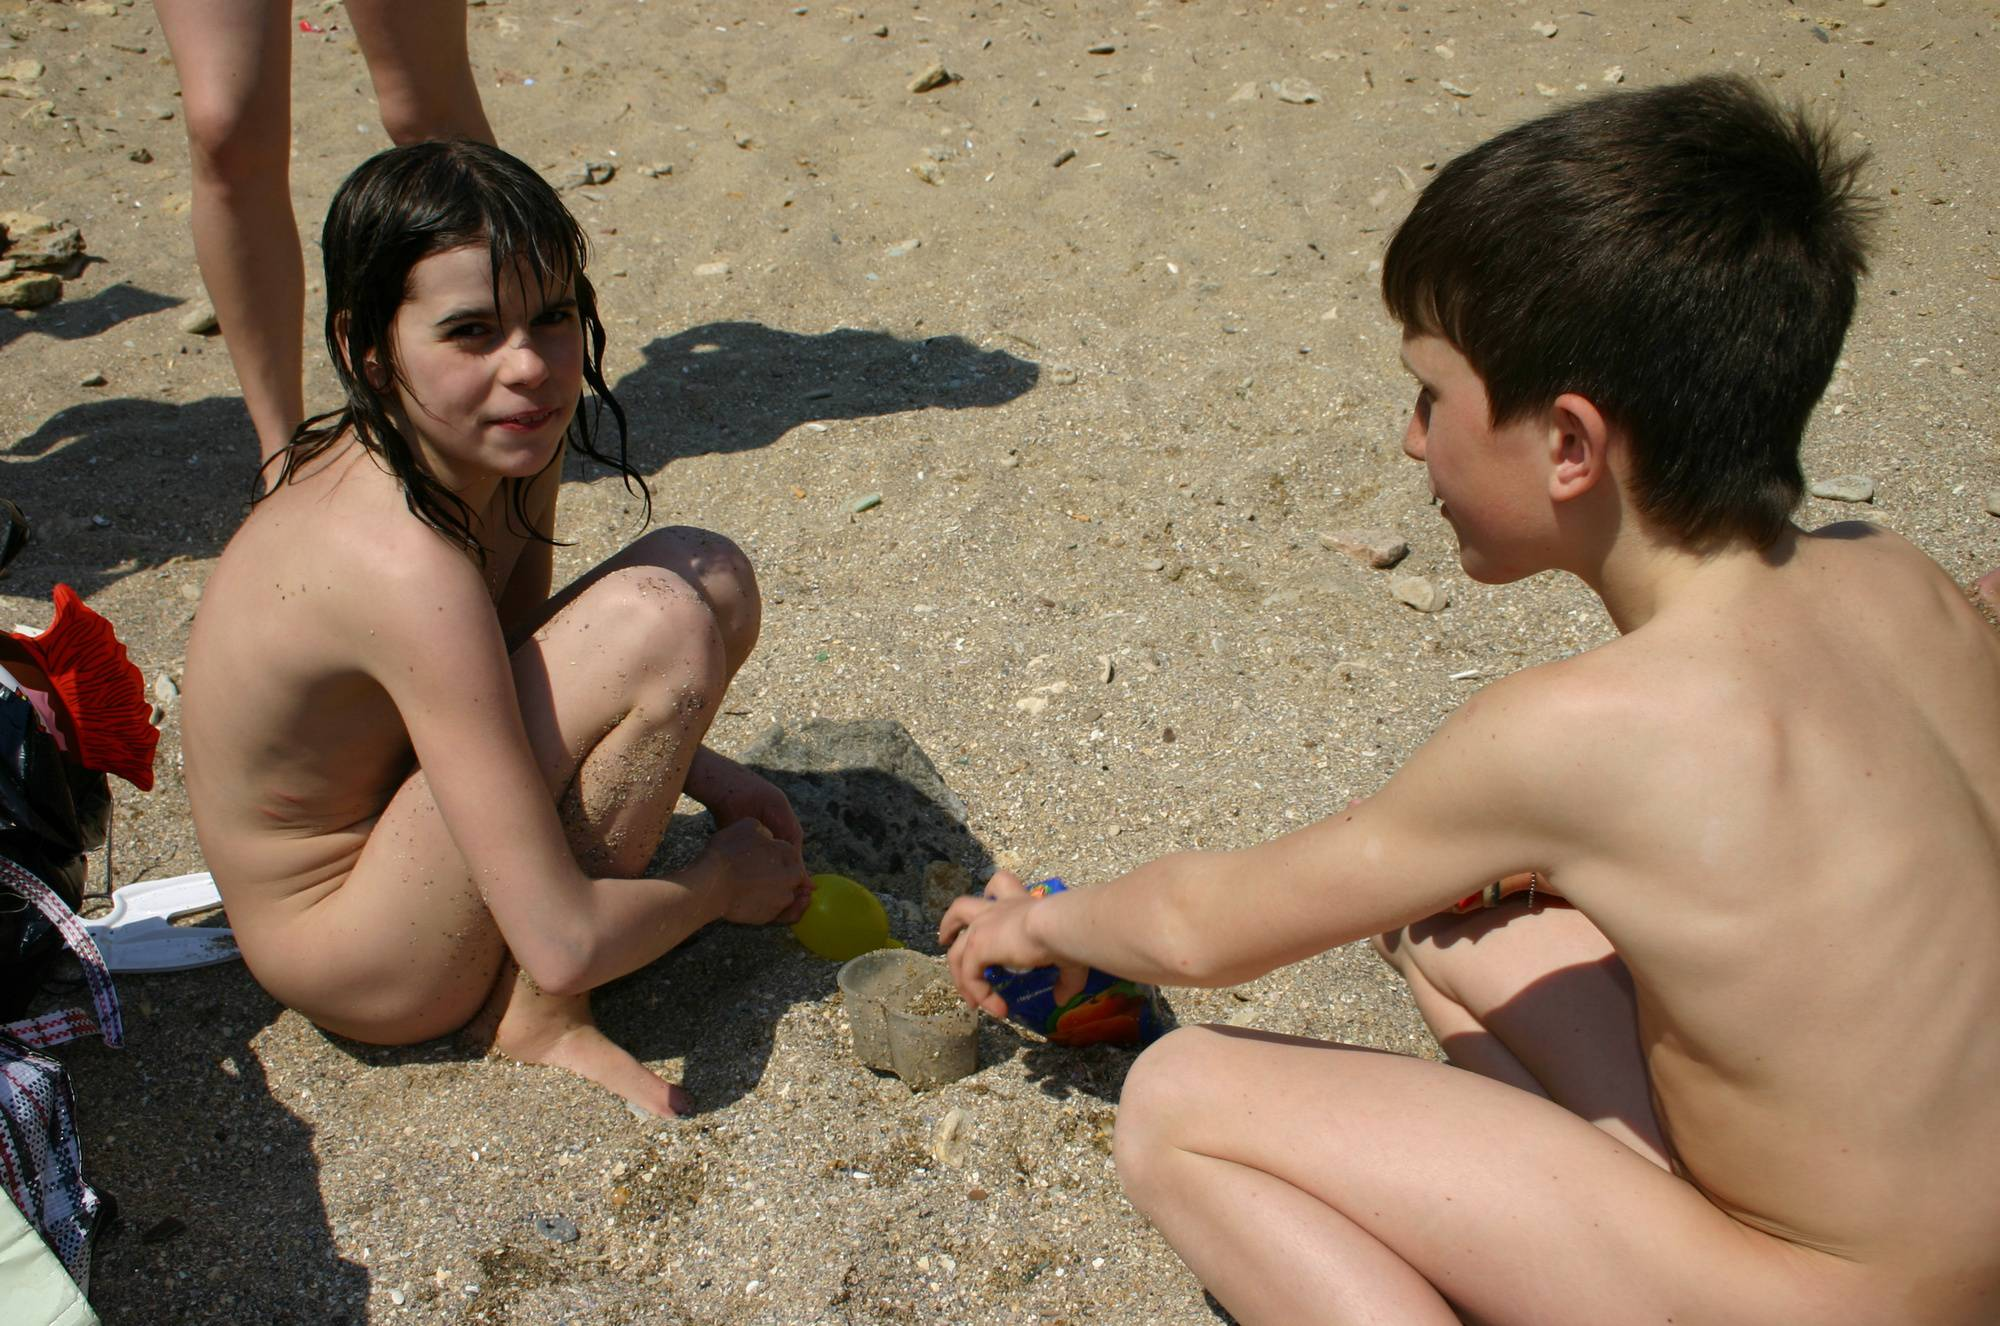 Nudist Pictures Family Group Balloon Fill - 2